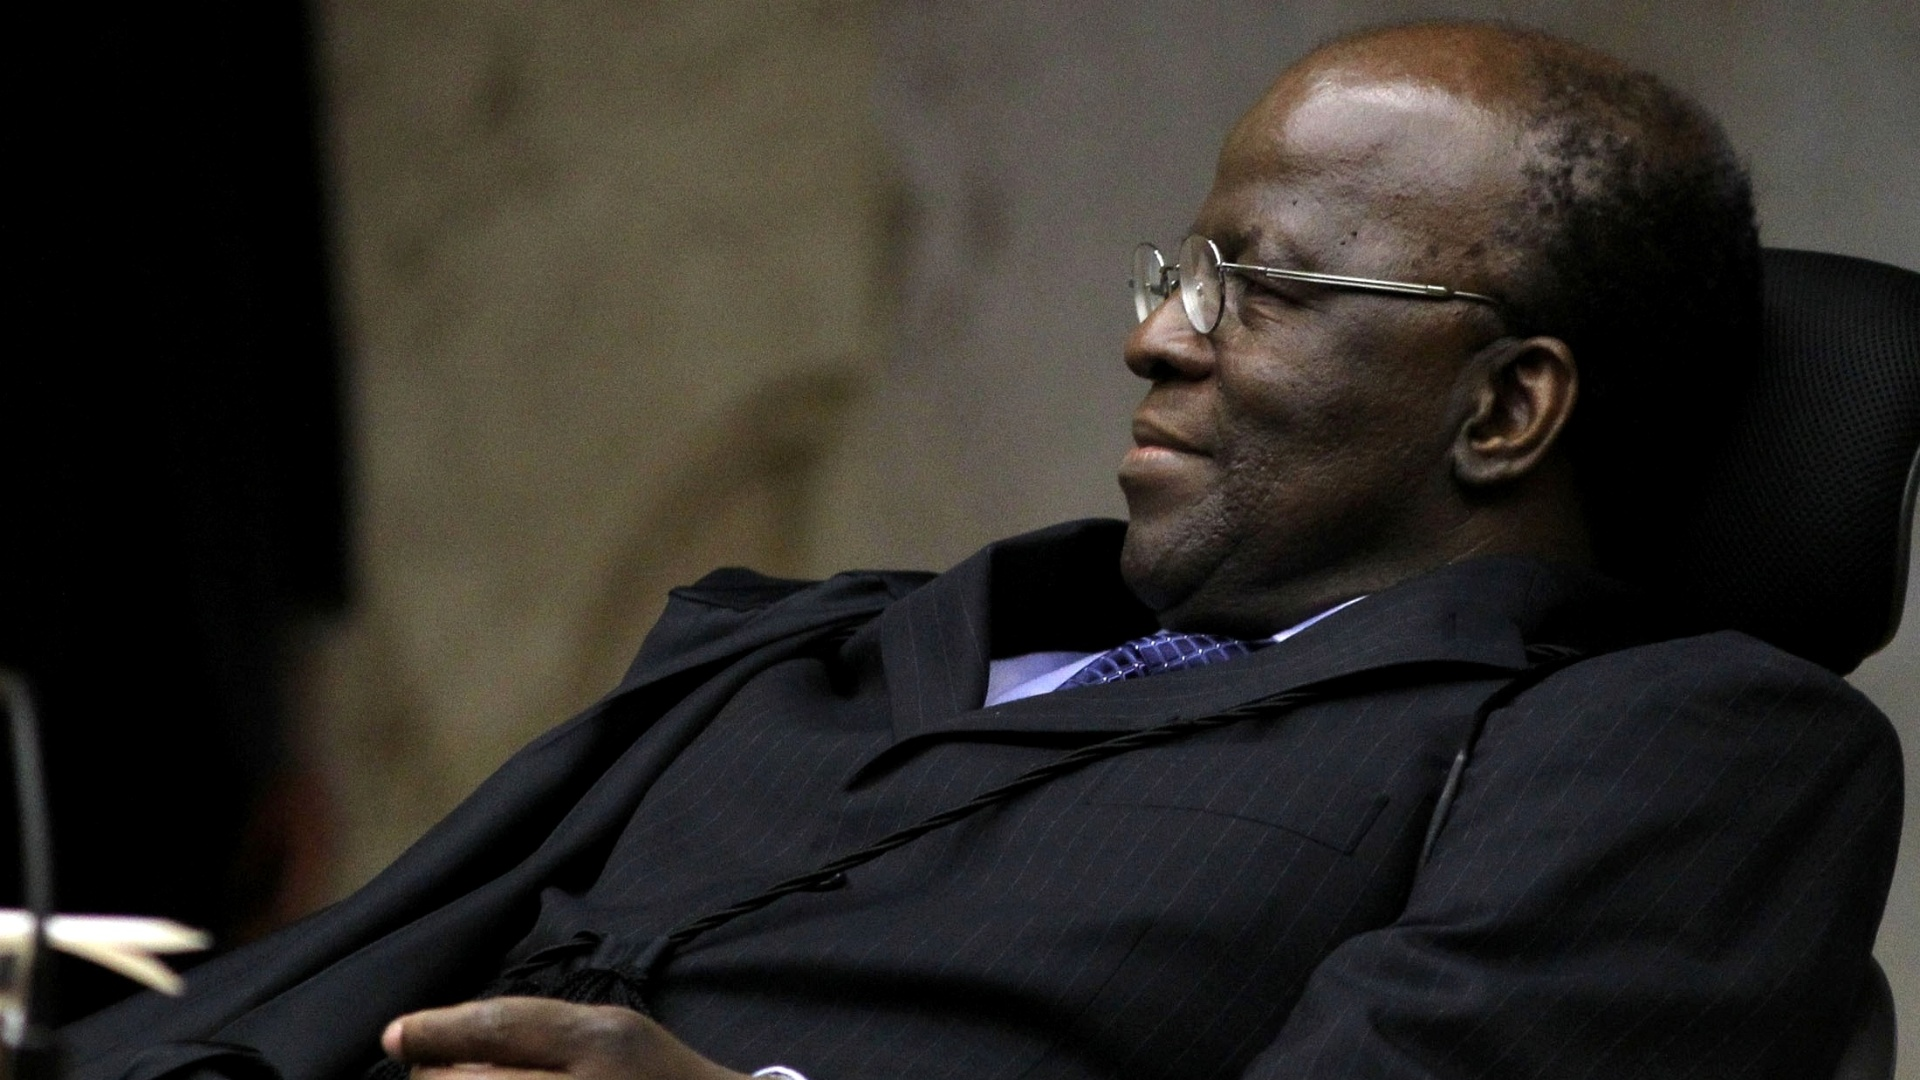 22.out.2012 - Joaquim Barbosa, ministro relator do processo do mensalo, acompanha sesso da ltima semana de julgamento 